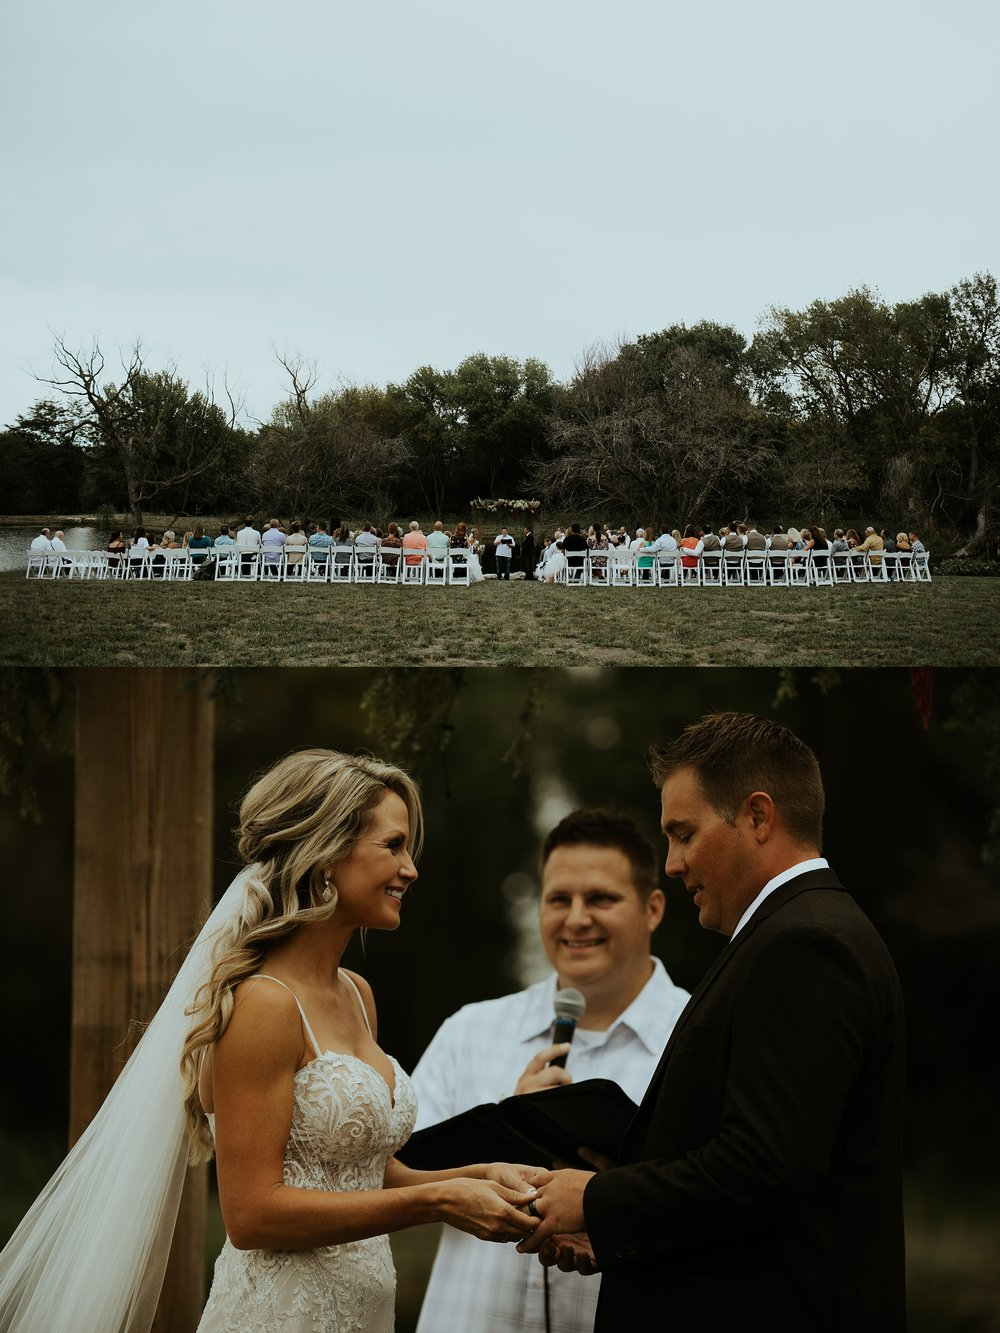 Earthy Lincoln Nebraska Outdoor Wedding with a Rustic Flair Complete with a Firework Ending by Trin Jensen Photography_0008.jpg